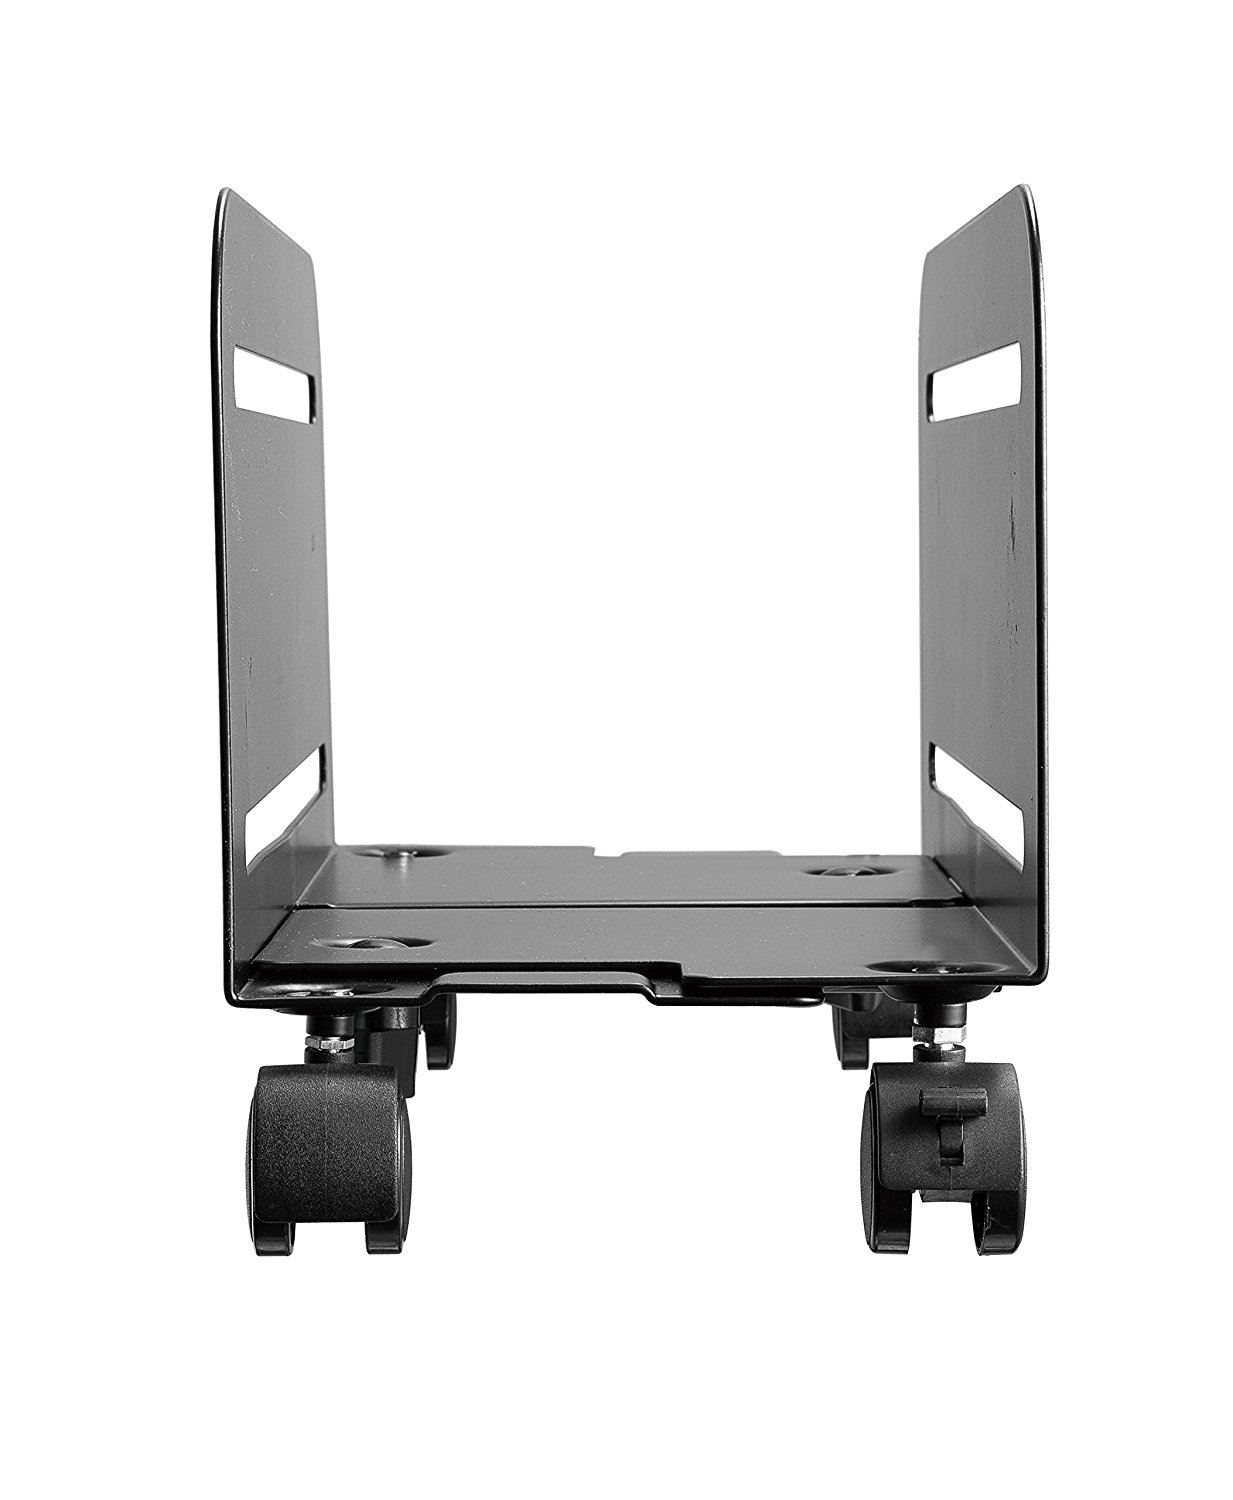 Allcam-CPU-Holder-Mobile-PC-Computer-Floor-Stand-Trolley-or-Underdesk-Mount